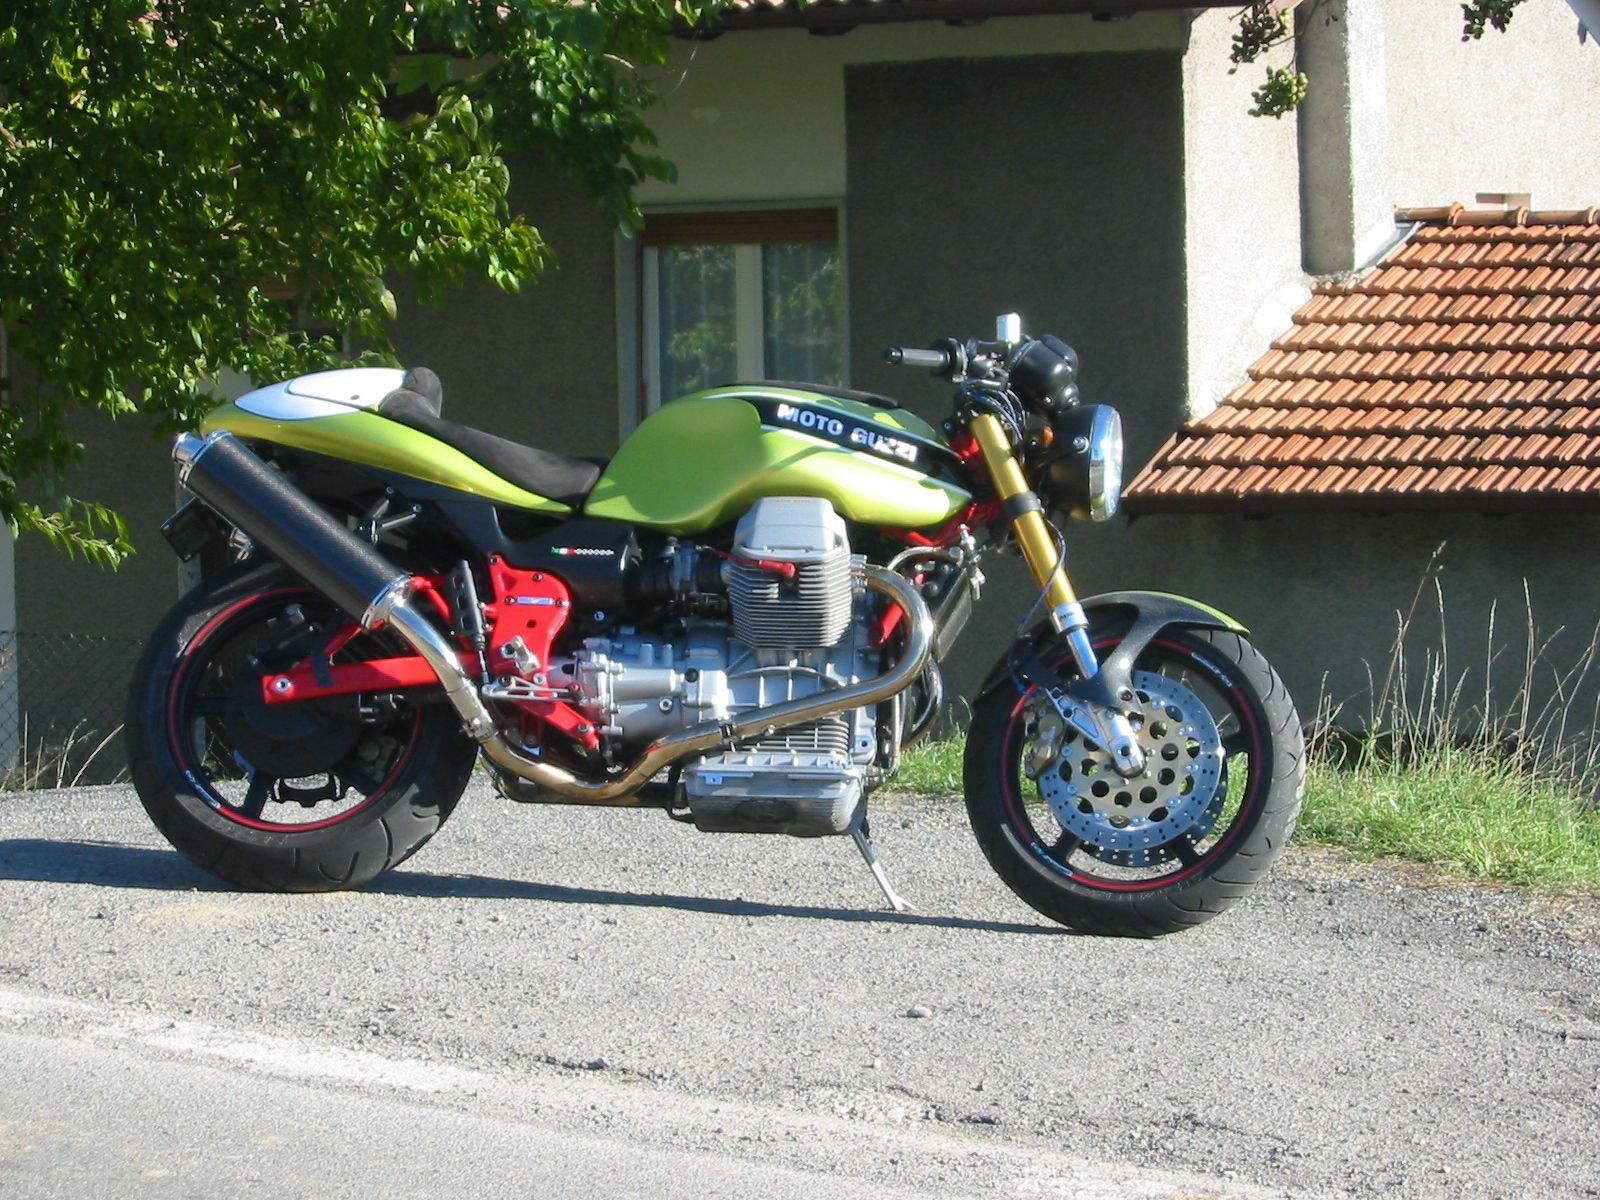 Moto guzzi 65 photo - 3